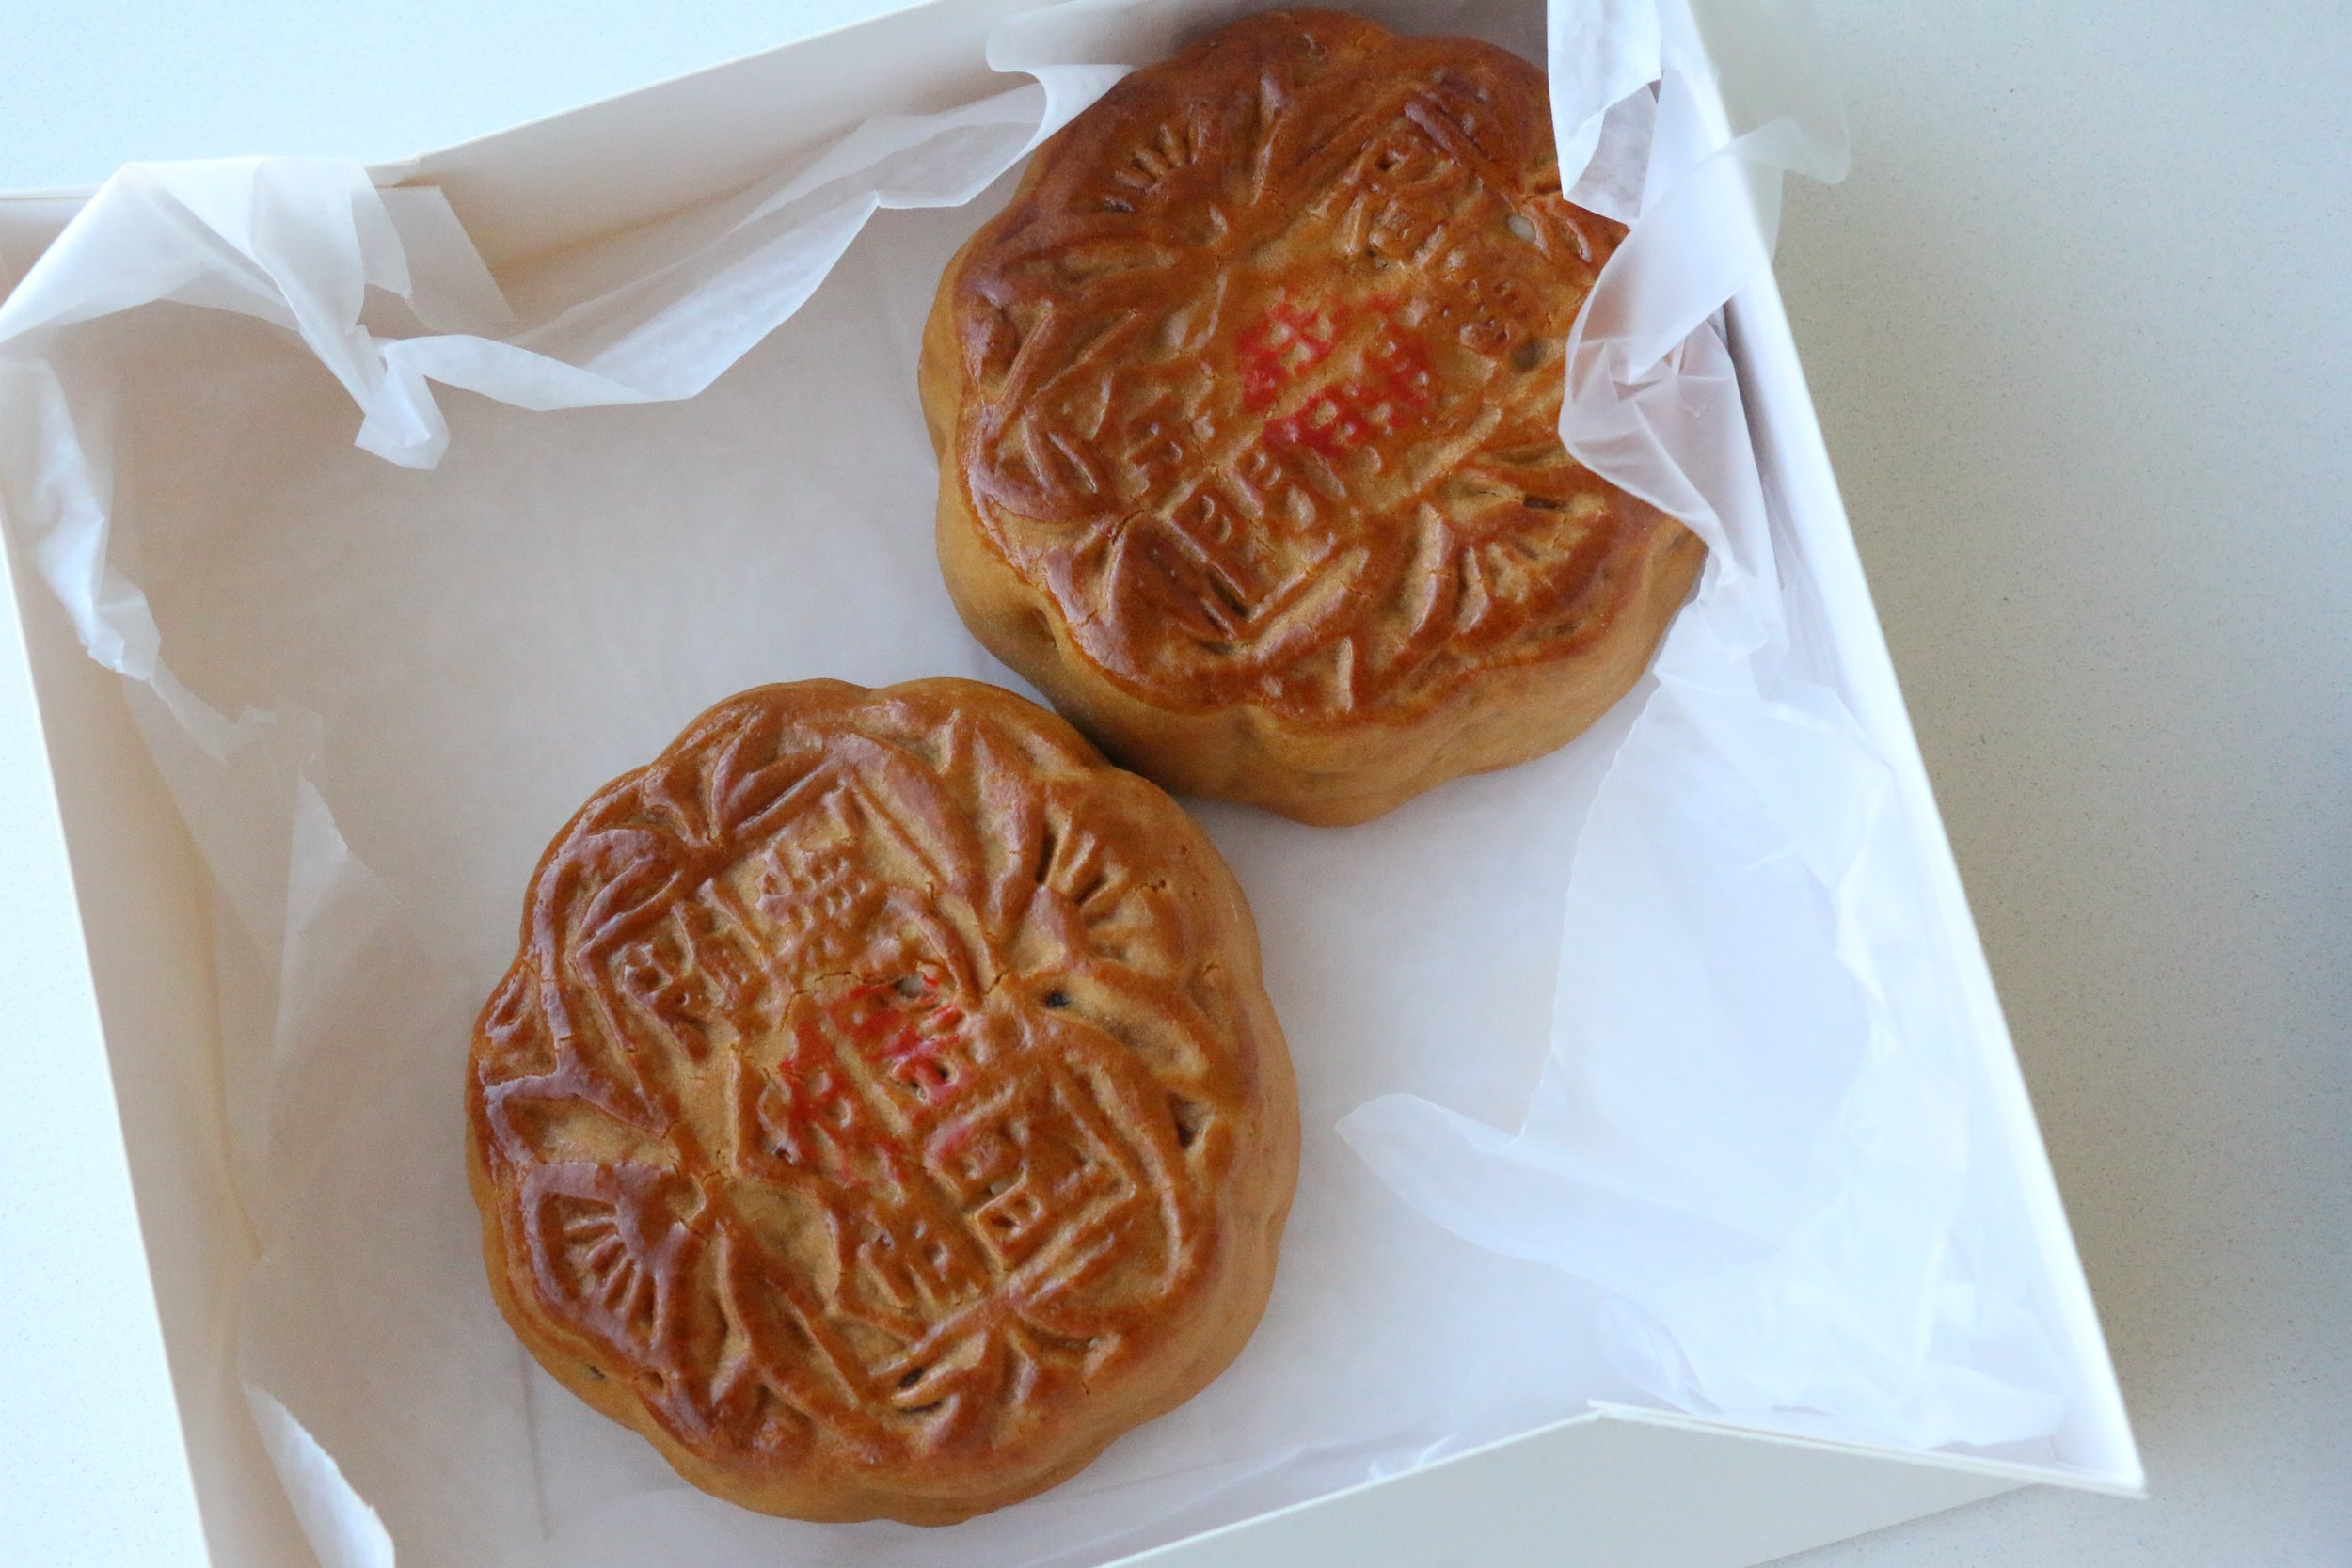 Beautiful Pair of Mooncakes brought back fresh from the bakery